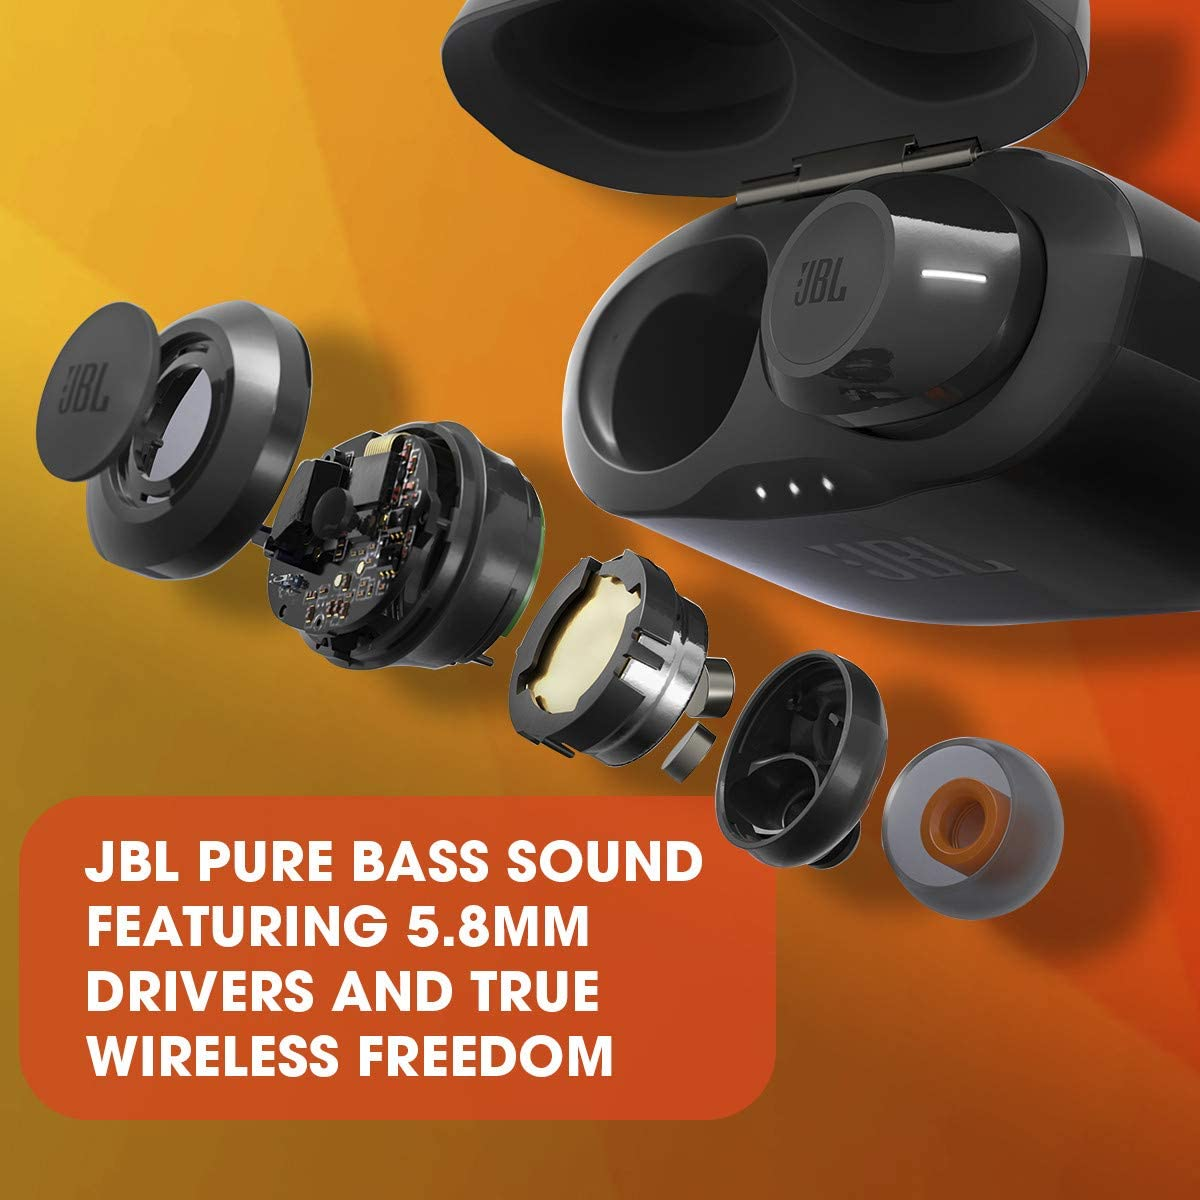 Buy JBL TUNE 120TWS - True Wireless In-Ear Bluetooth Headphones with Microphone, Wireless Bluetooth Earbuds, up to 16 Hours Battery, works with Android and Apple iOS (Black) White SK6WU4s